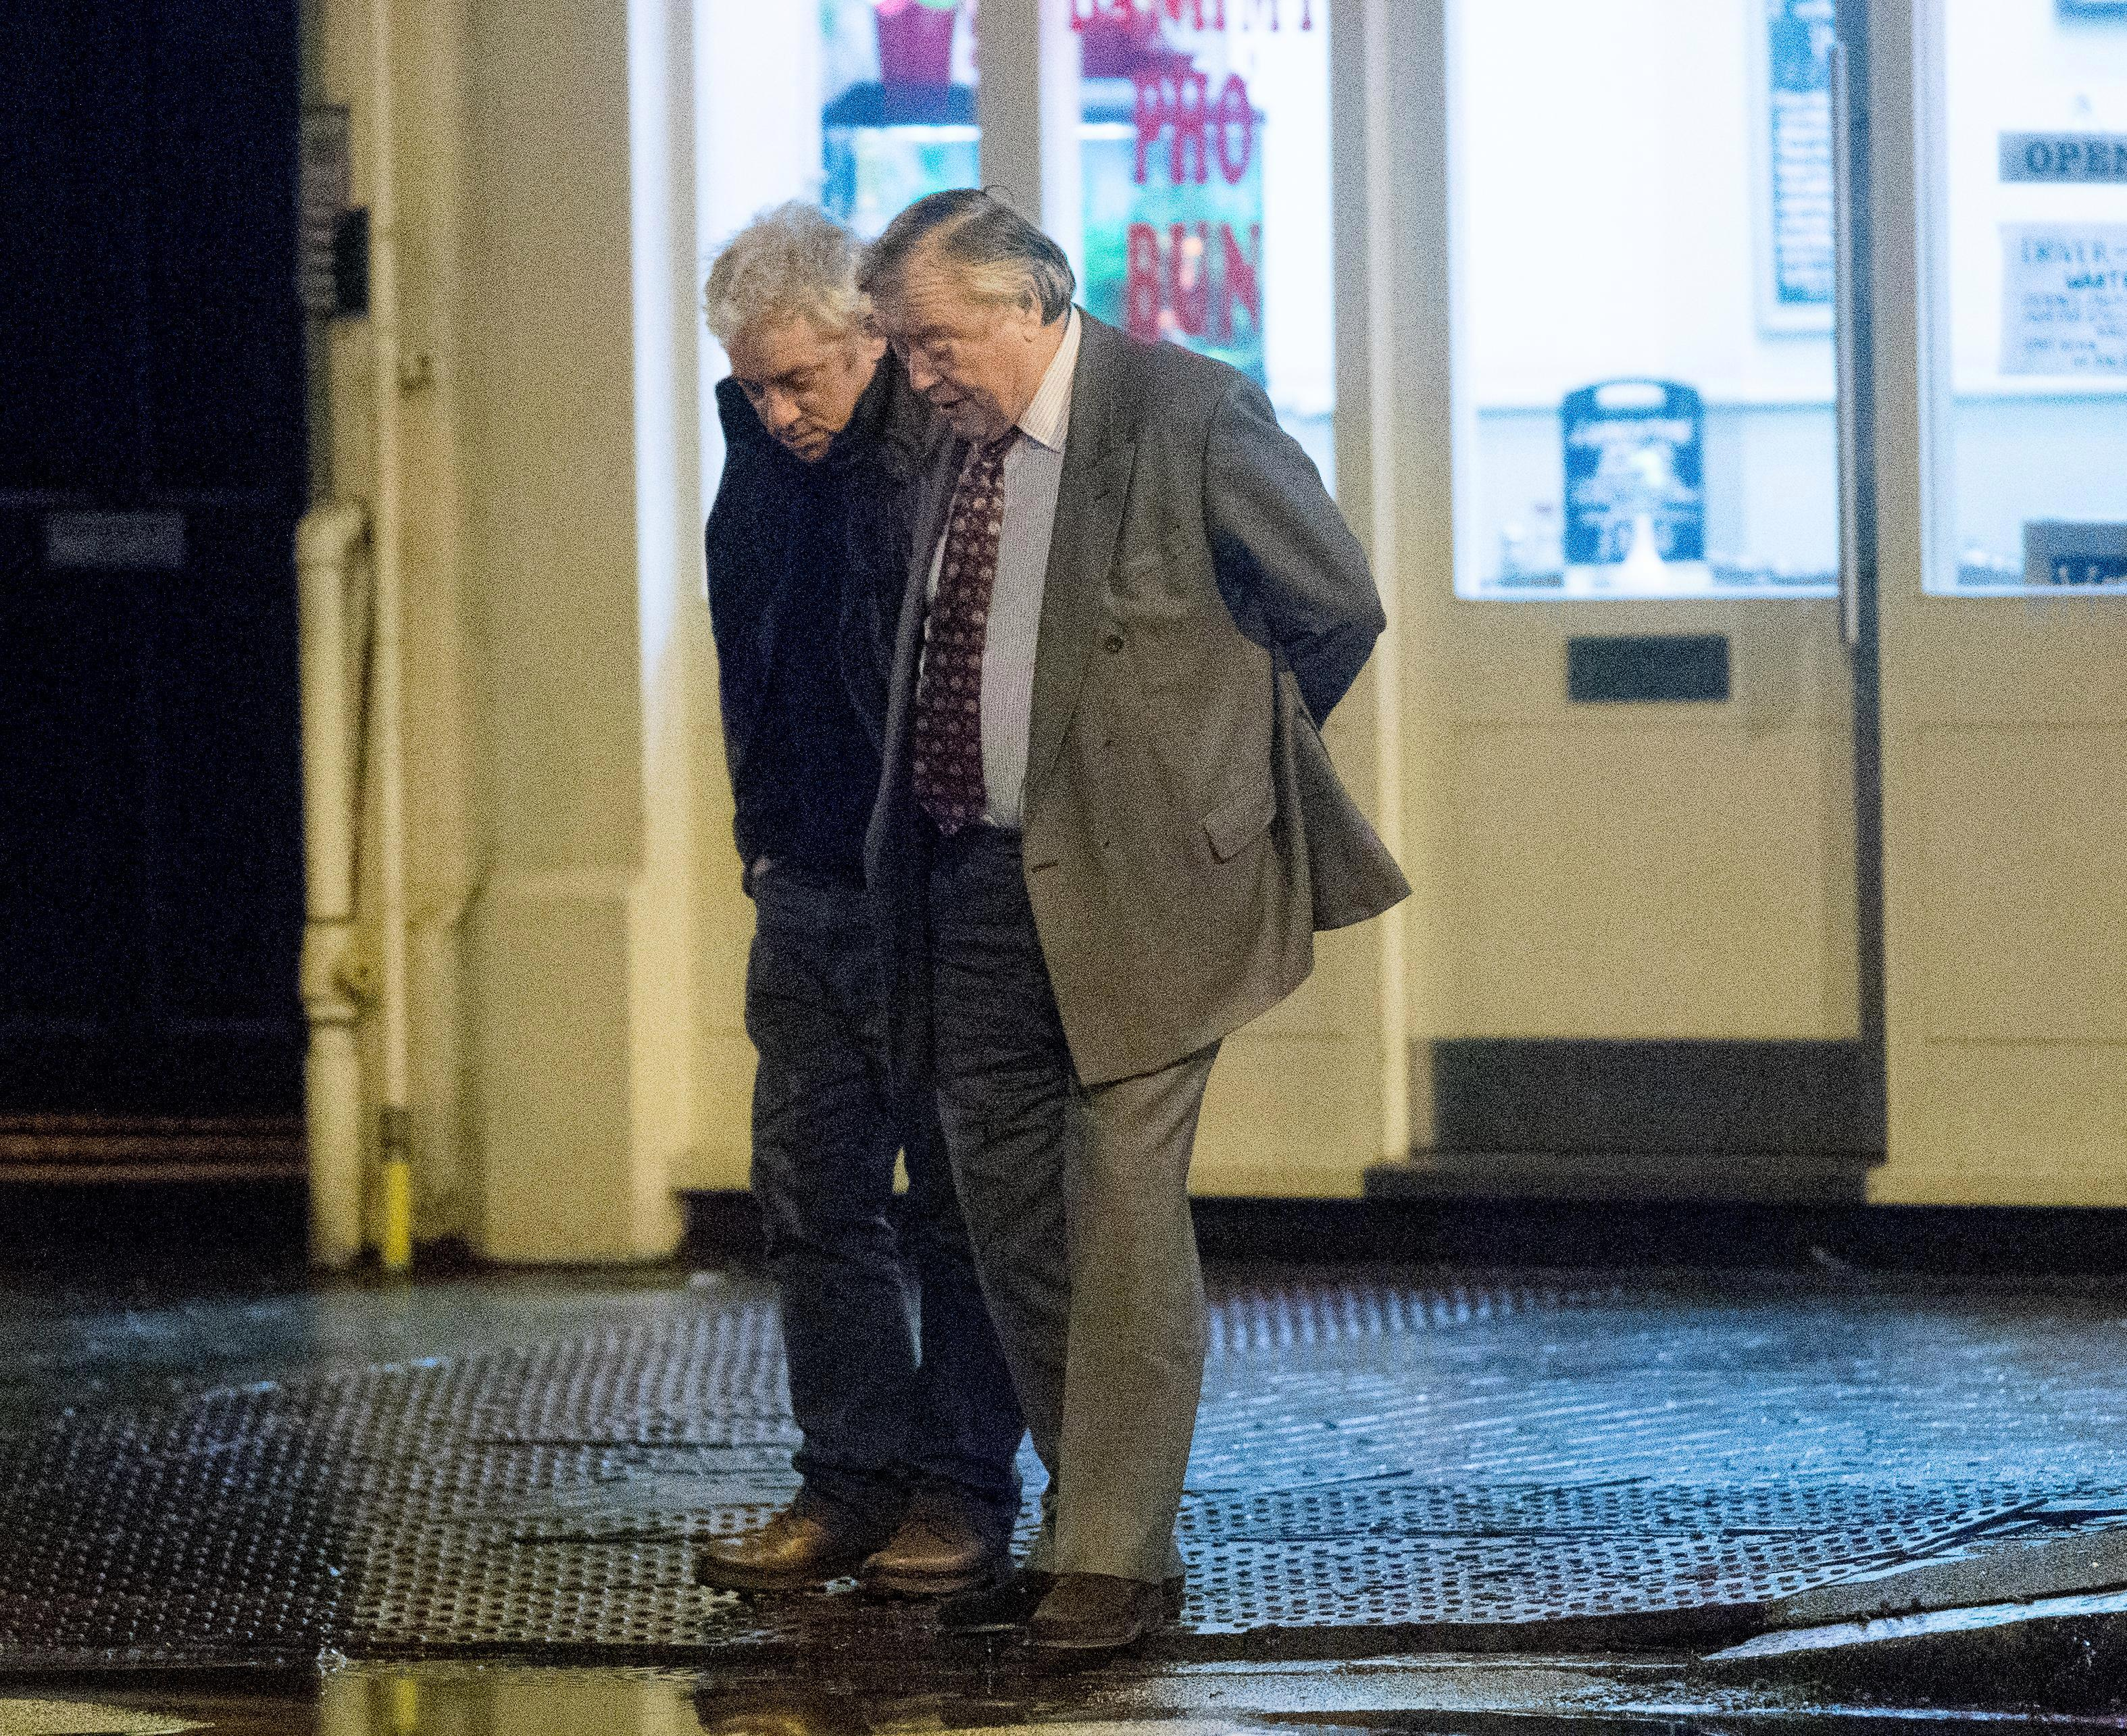 Remainer John Bercow accused of plotting with anti-Brexit MPs after secret curry house talks with Ken Clarke